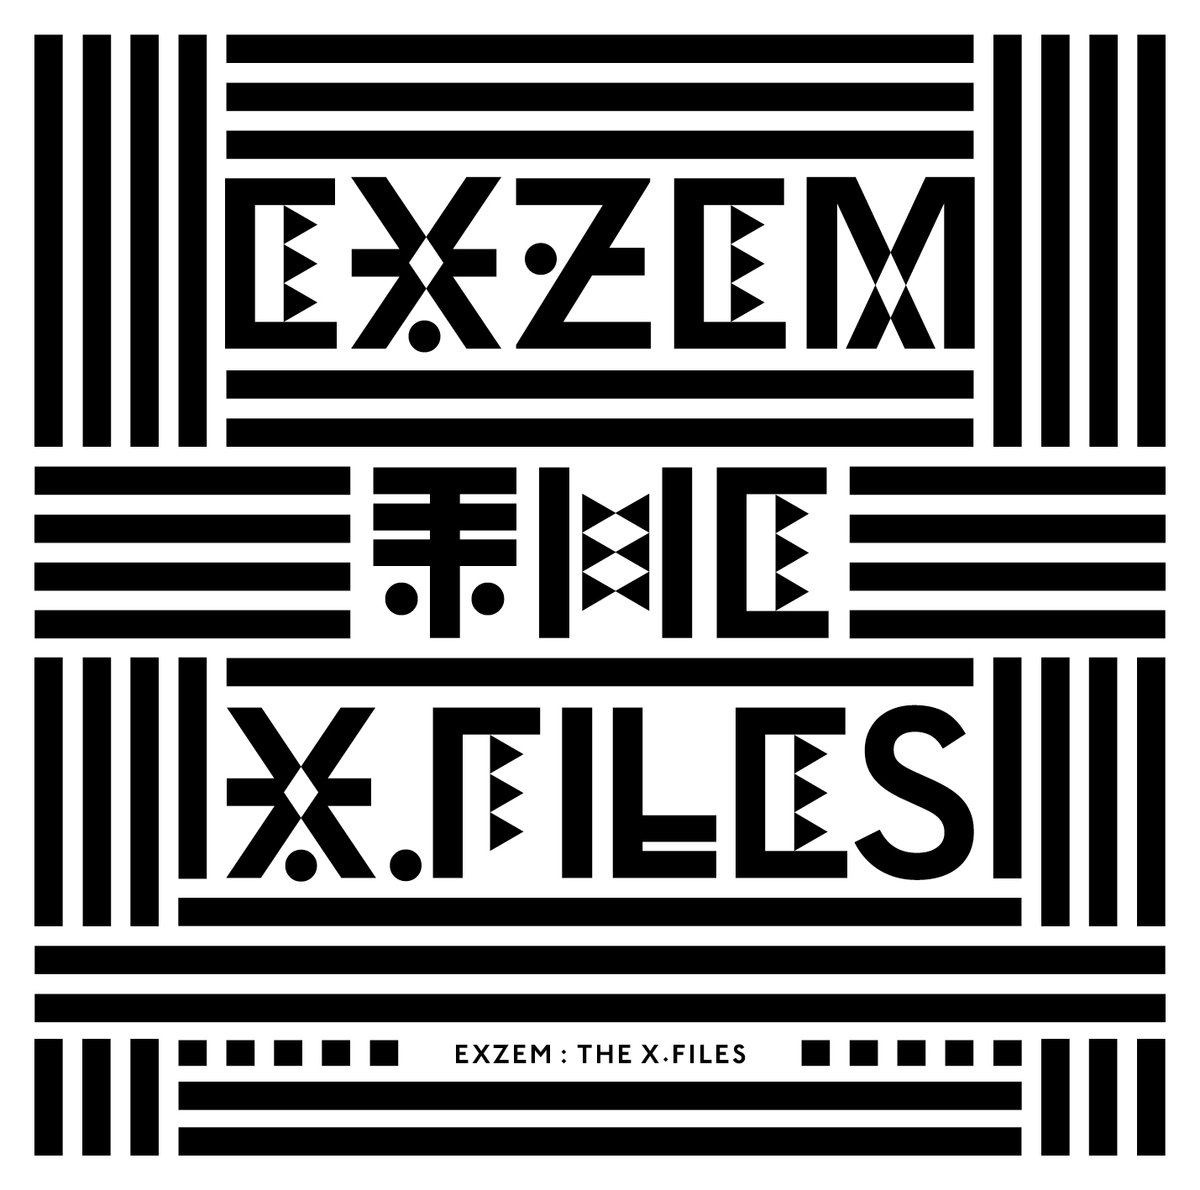 TESK BEATS ~ Exzem - The X Files